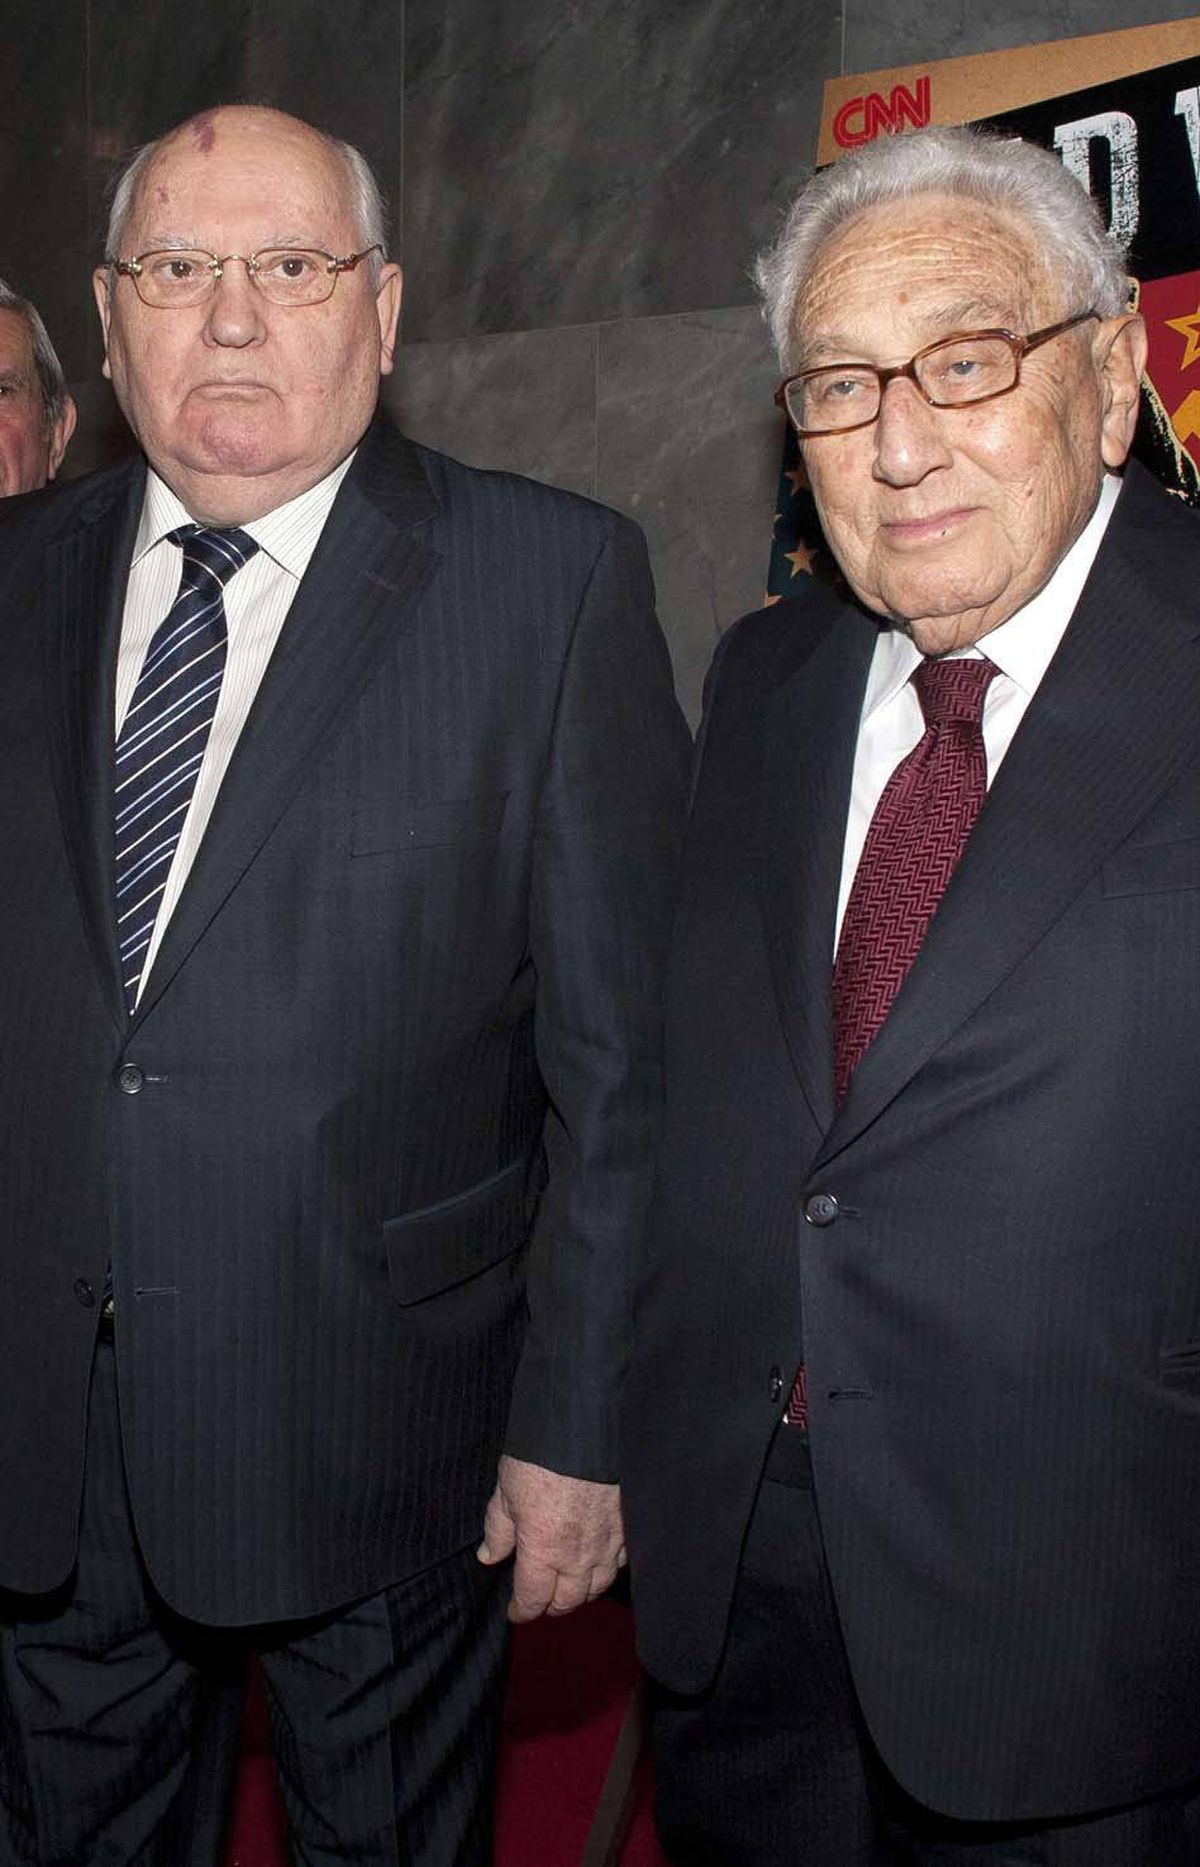 And here is a bilateral cold shower for you all, in the form of Soviet Union President Mikhail Sergeyevich Gorbachev (left) and former U.S. Secretary of State Dr. Henry Kissinger at the screening of a documentary about the Cold War in New York last week. All good now?